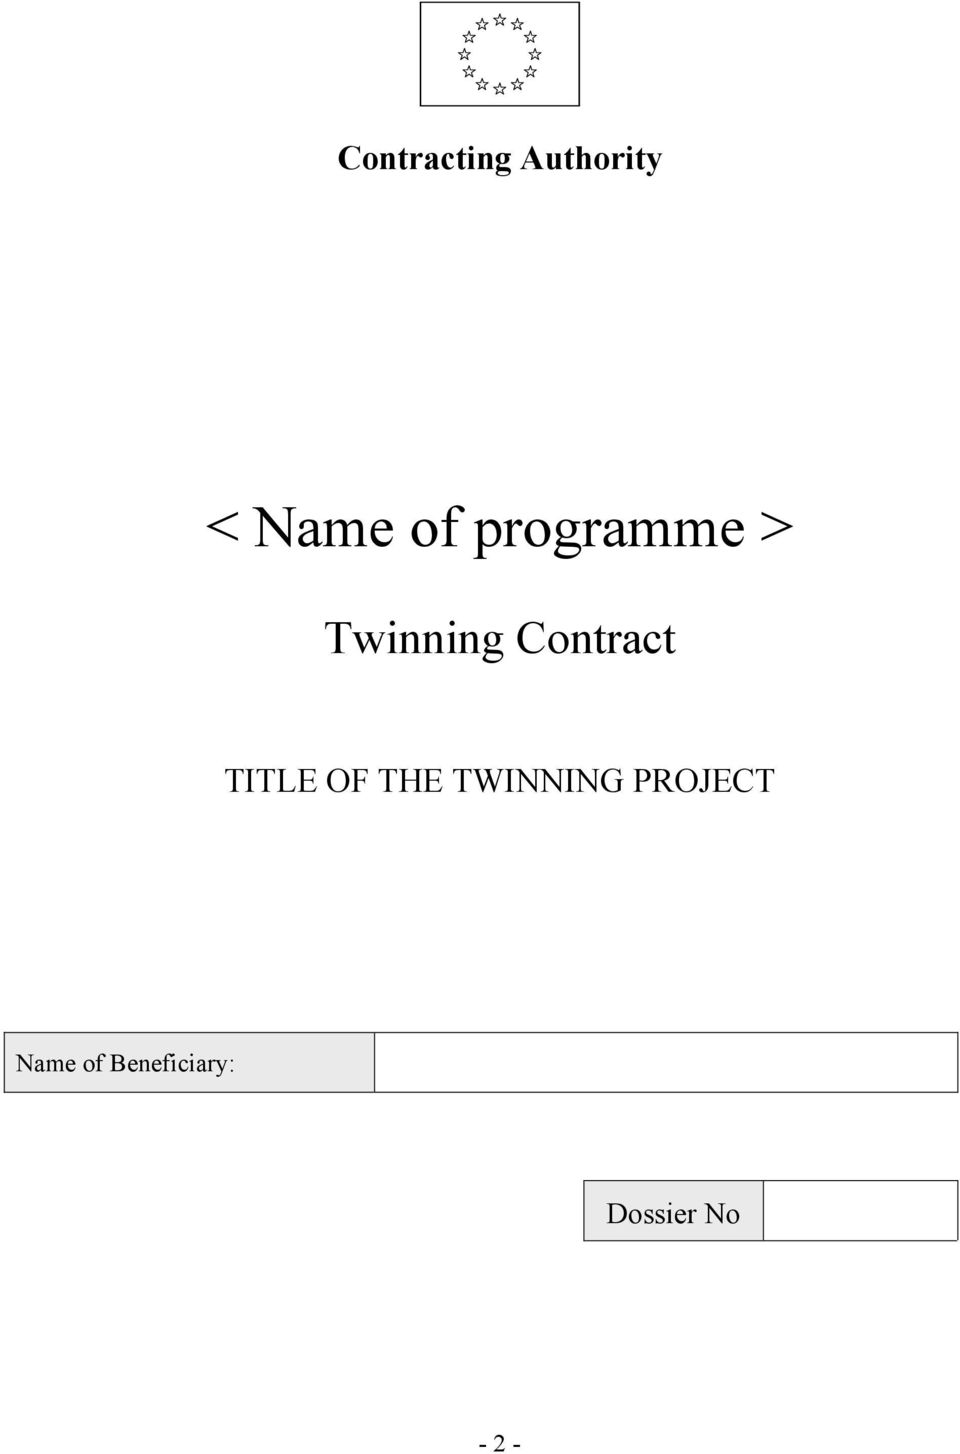 TITLE OF THE TWINNING PROJECT